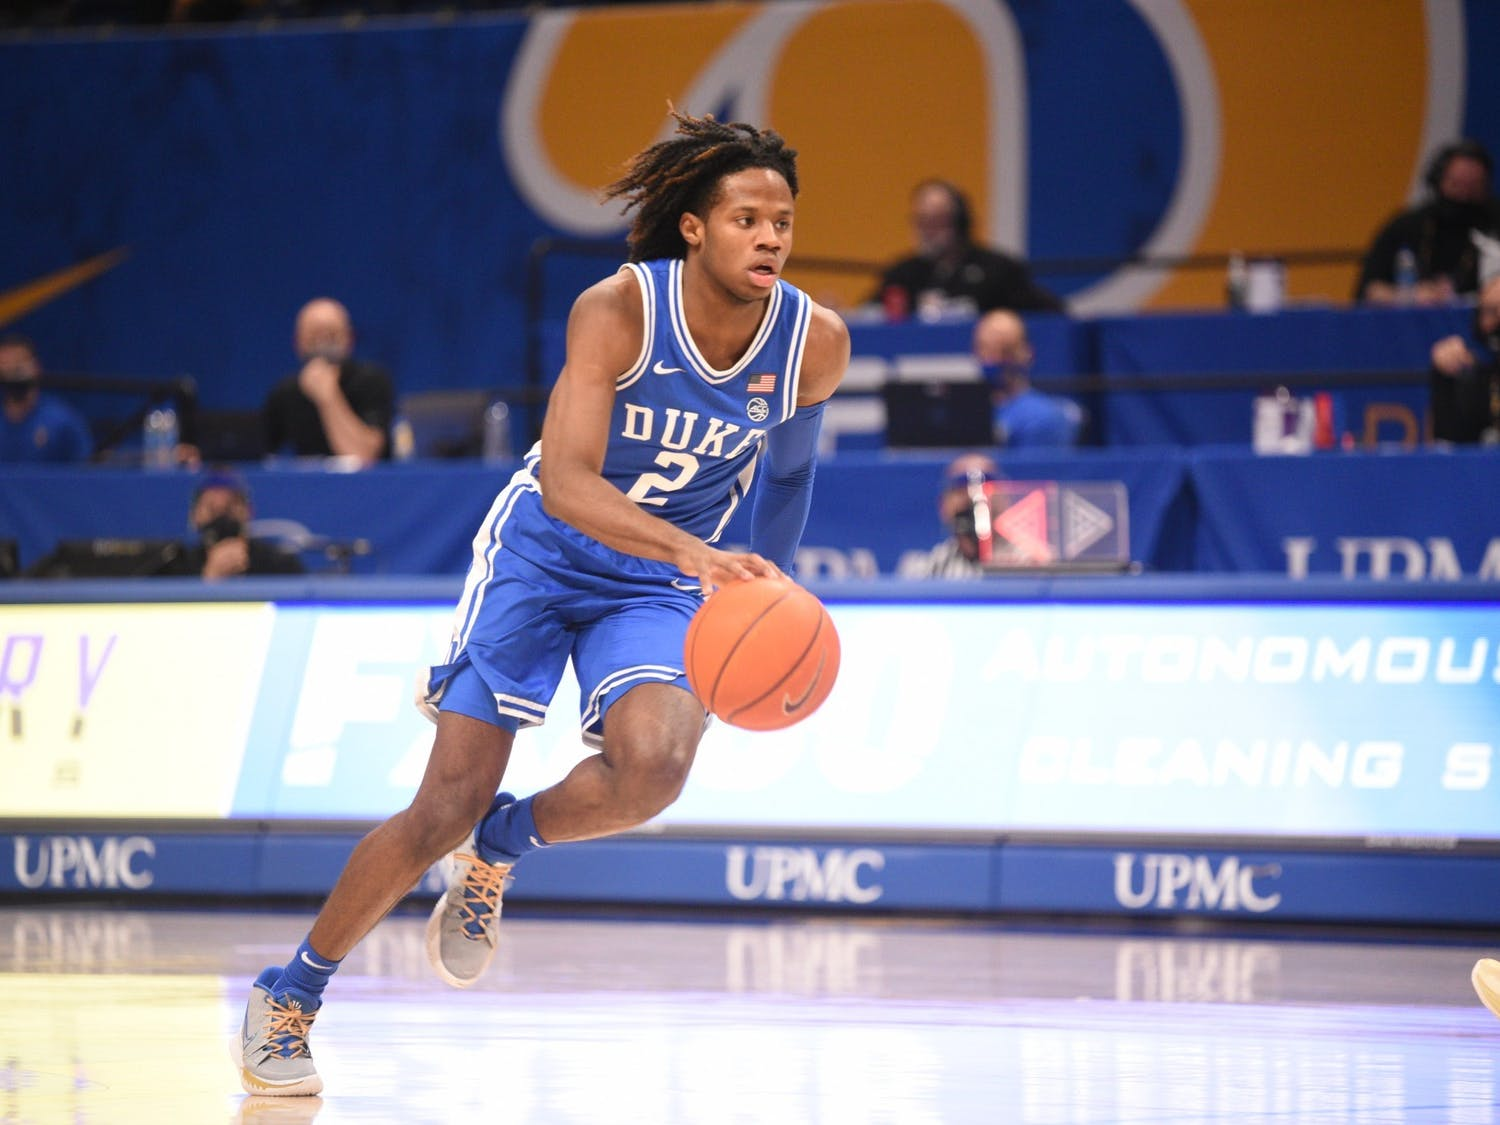 The freshman out of Chicago is looking to establish himself as a go-to scorer for the Blue Devils.